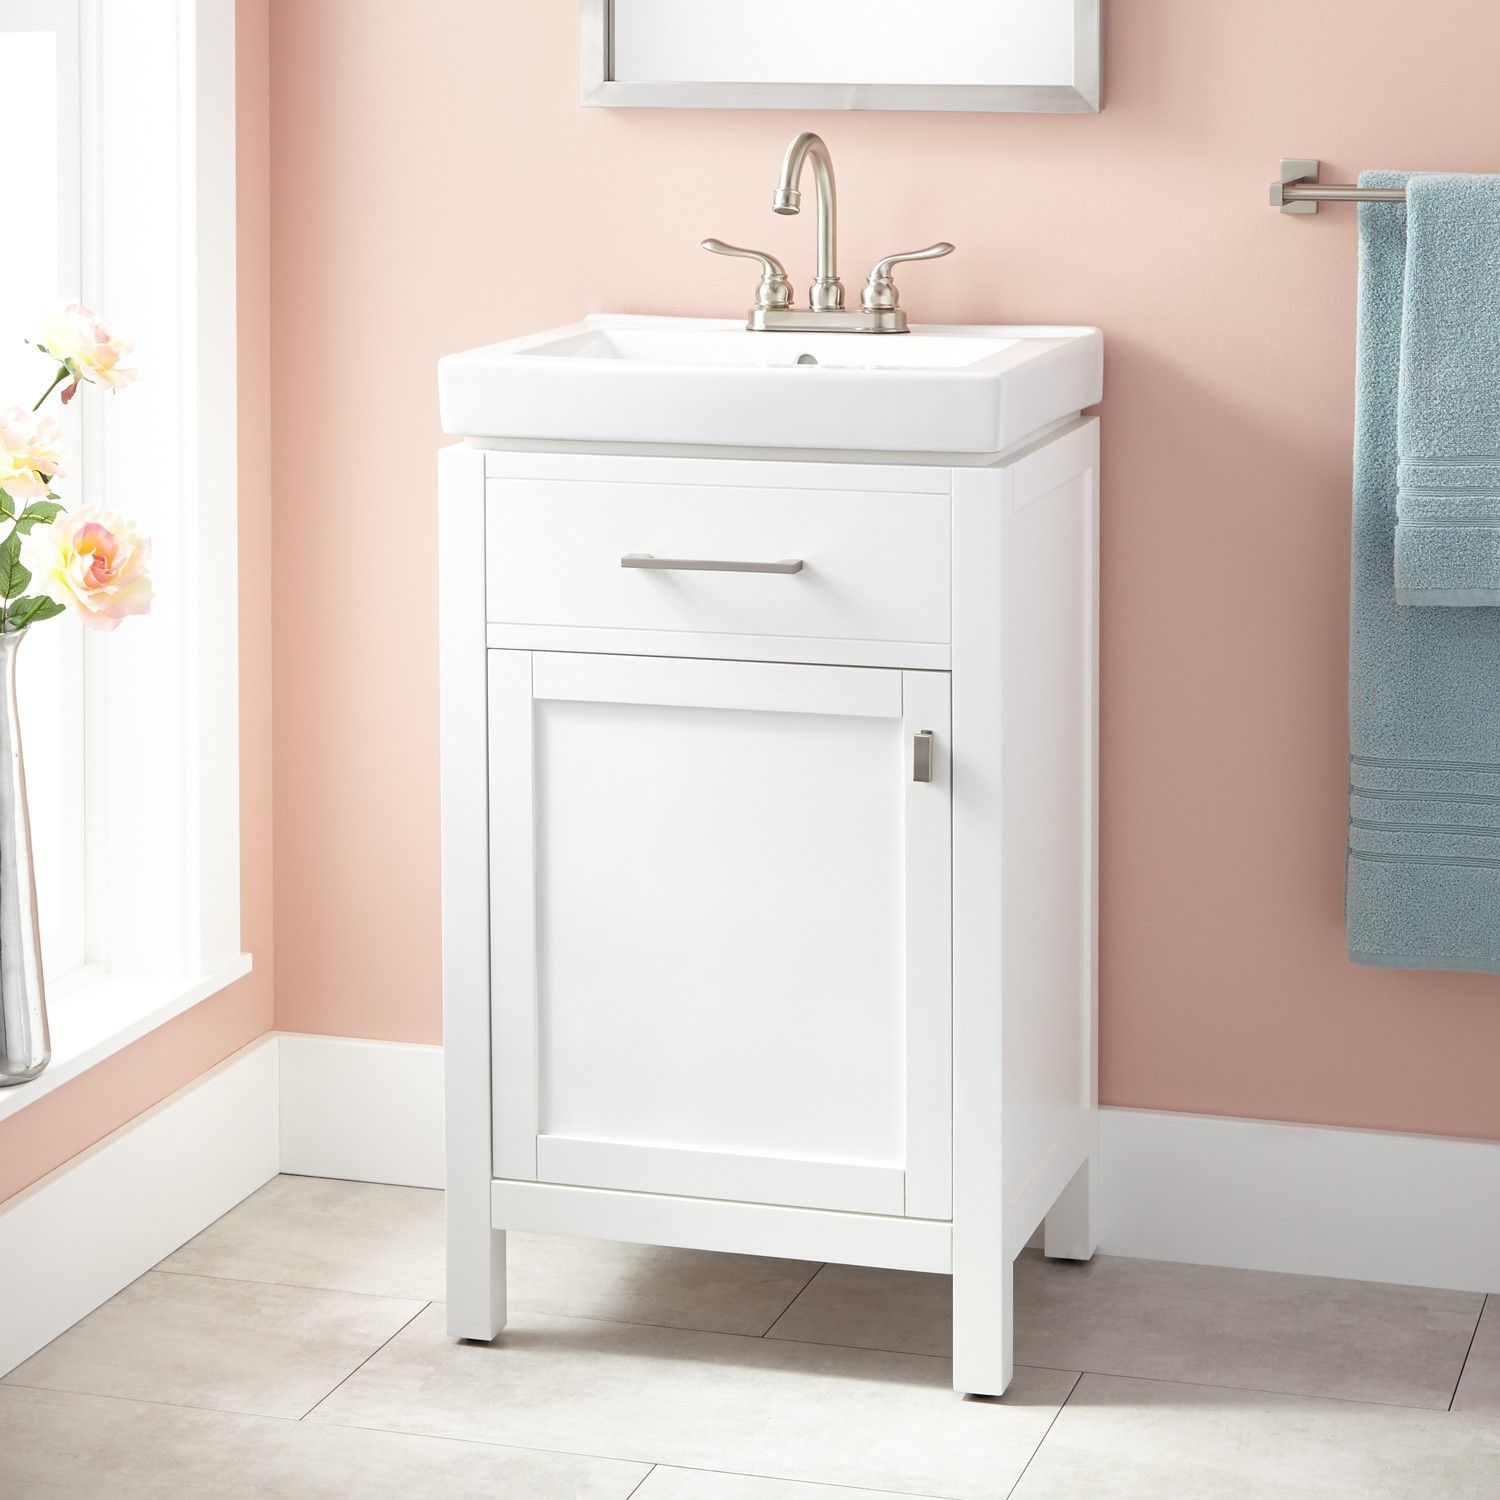 20 Foster Vanity White White Vanity Bathroom Unique Bathroom Vanity Small Bathroom Vanities